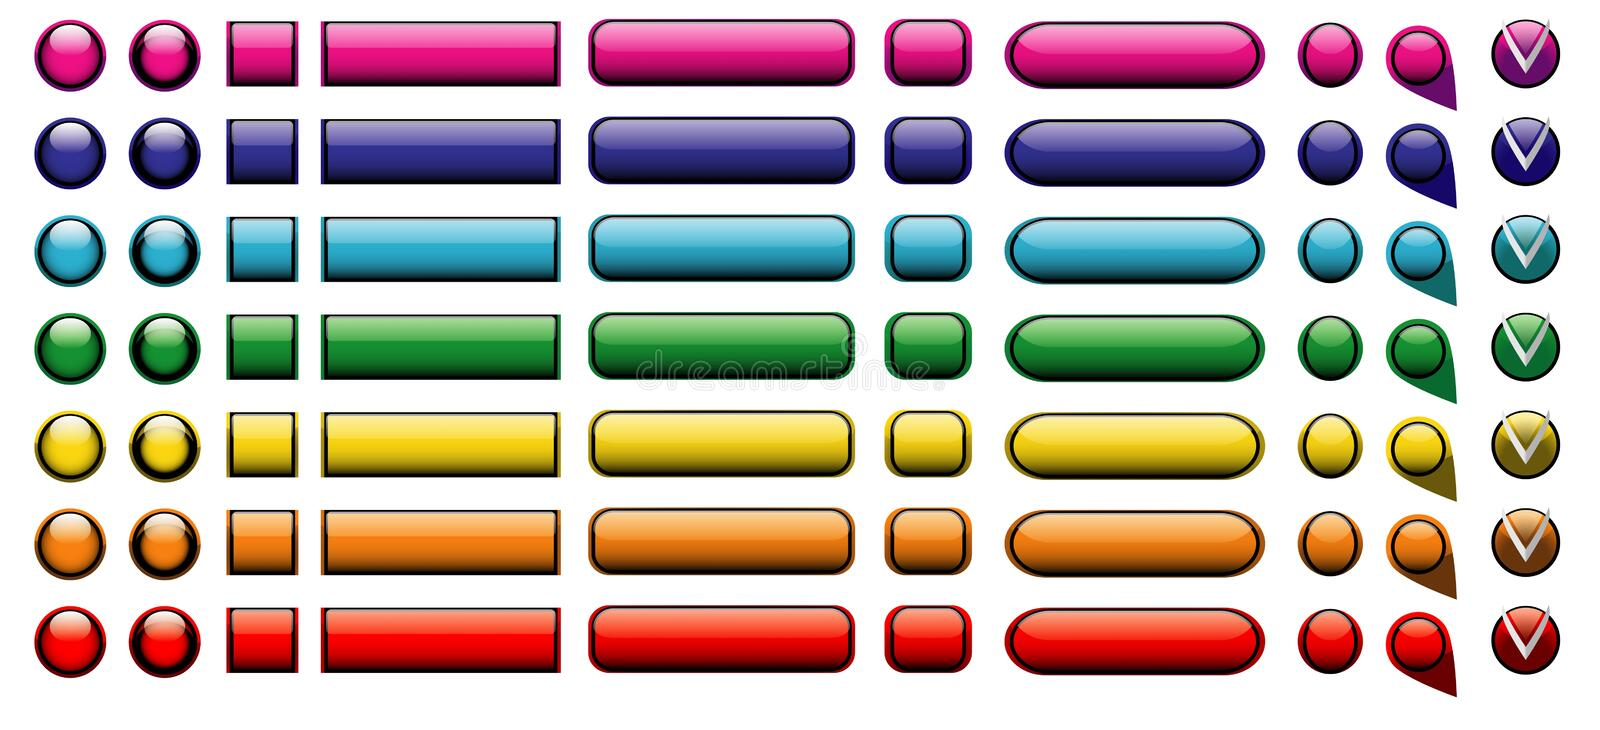 Web buttons. Illustration isolated several versions of several colors eps10 royalty free illustration